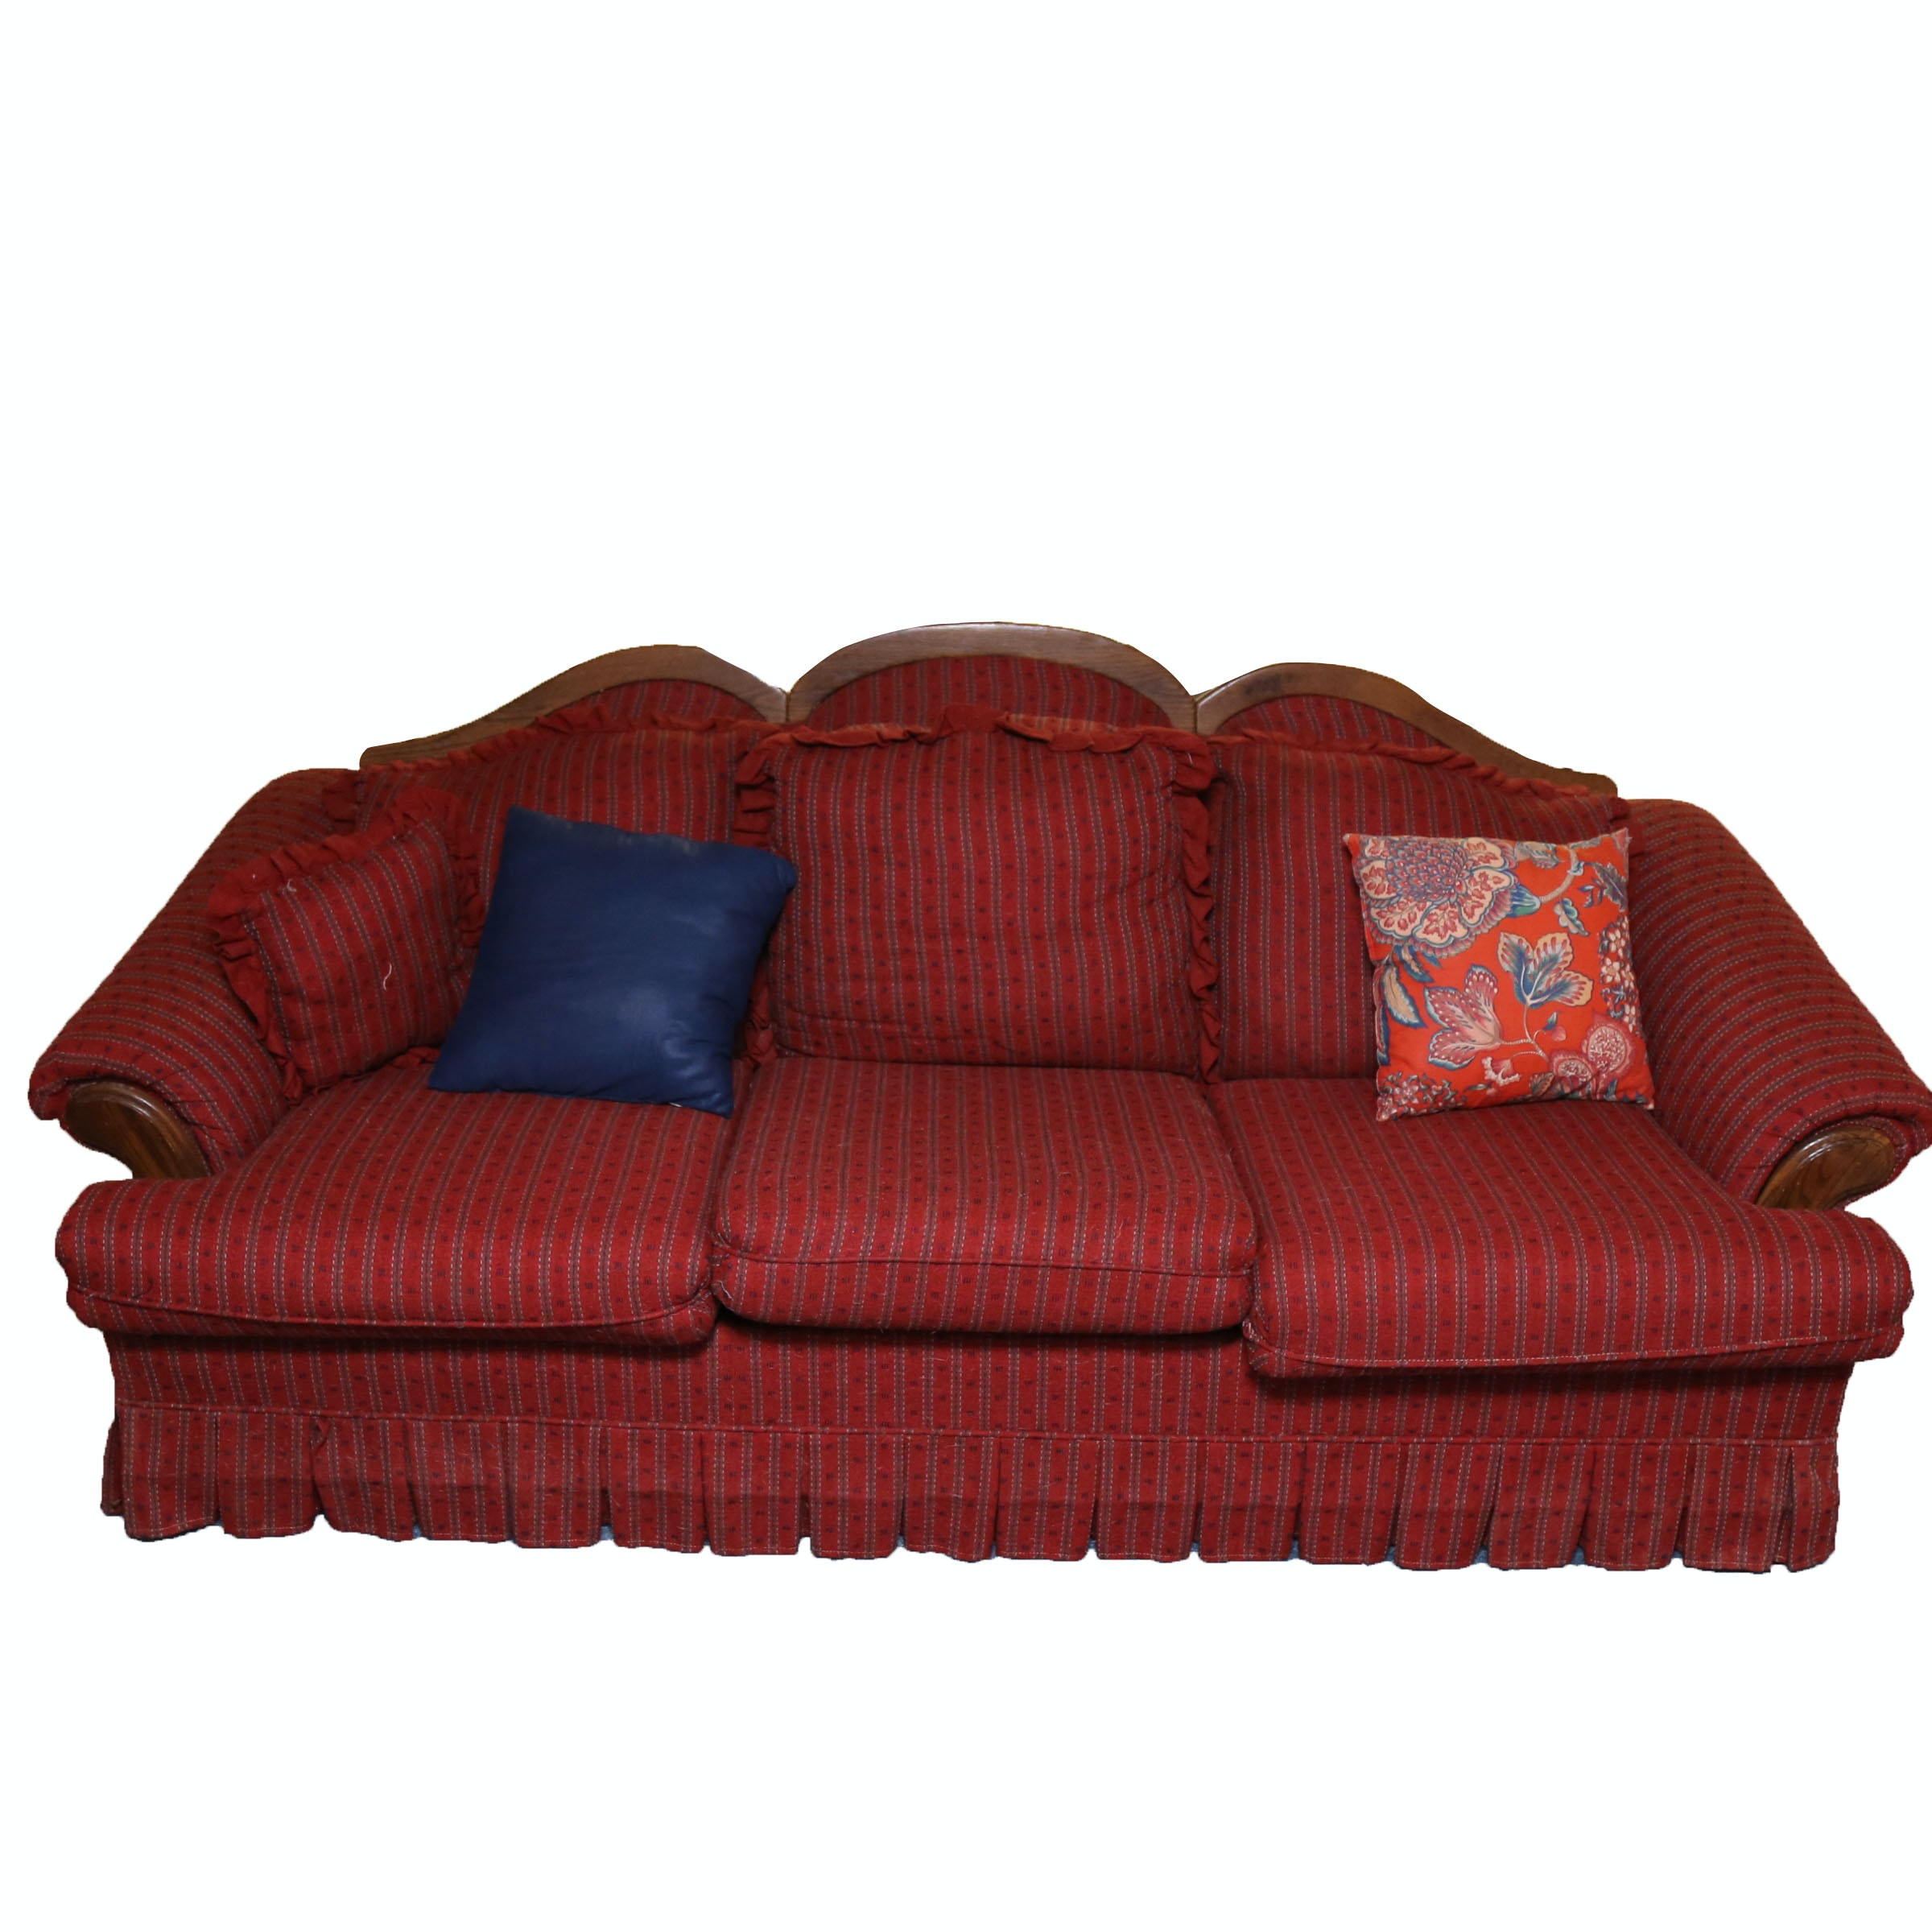 Red Striped Couch With Pillows by Nelson Furniture Inc.